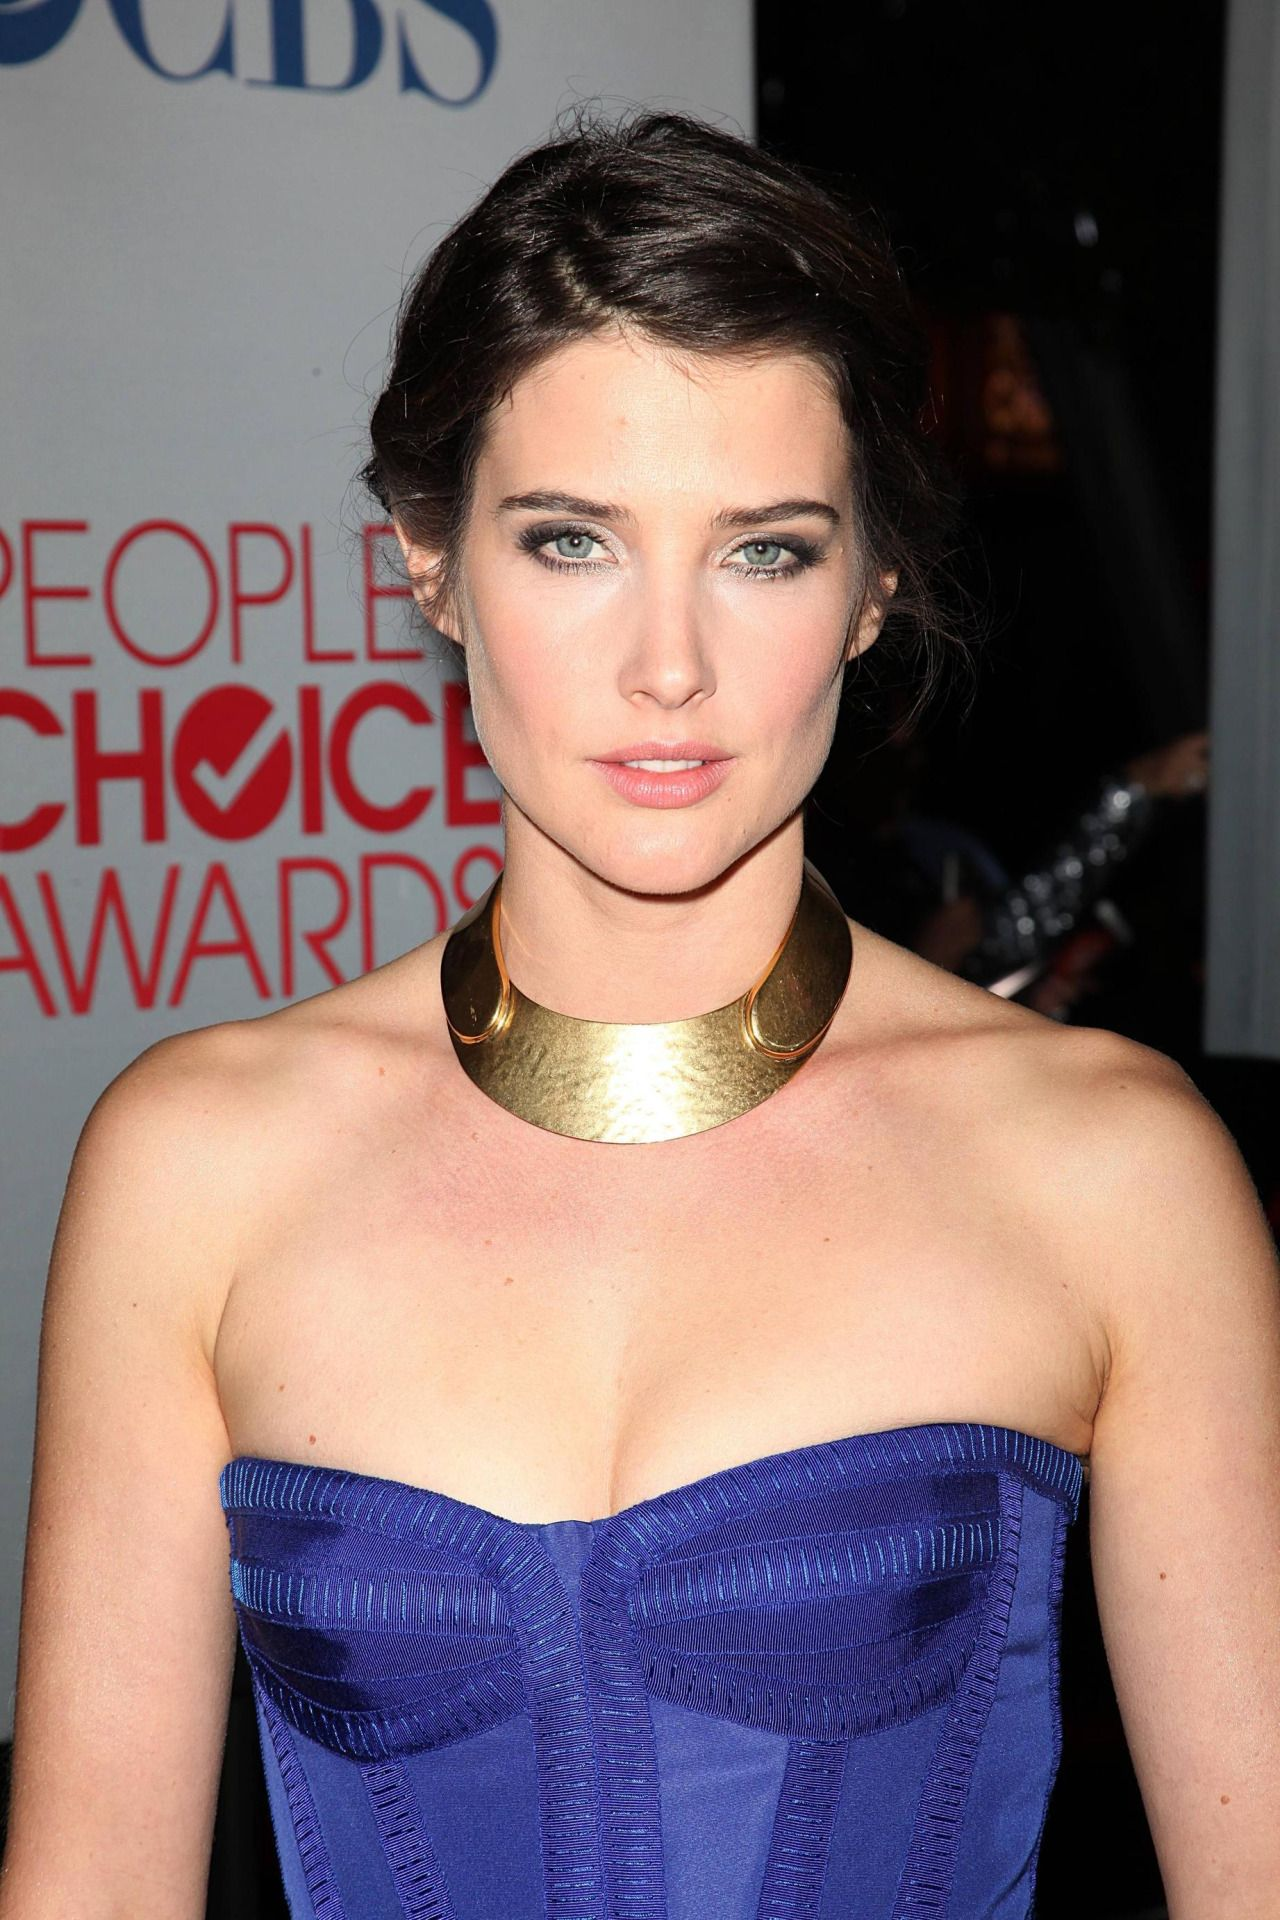 Snapchat Cobie Smulders nude photos 2019